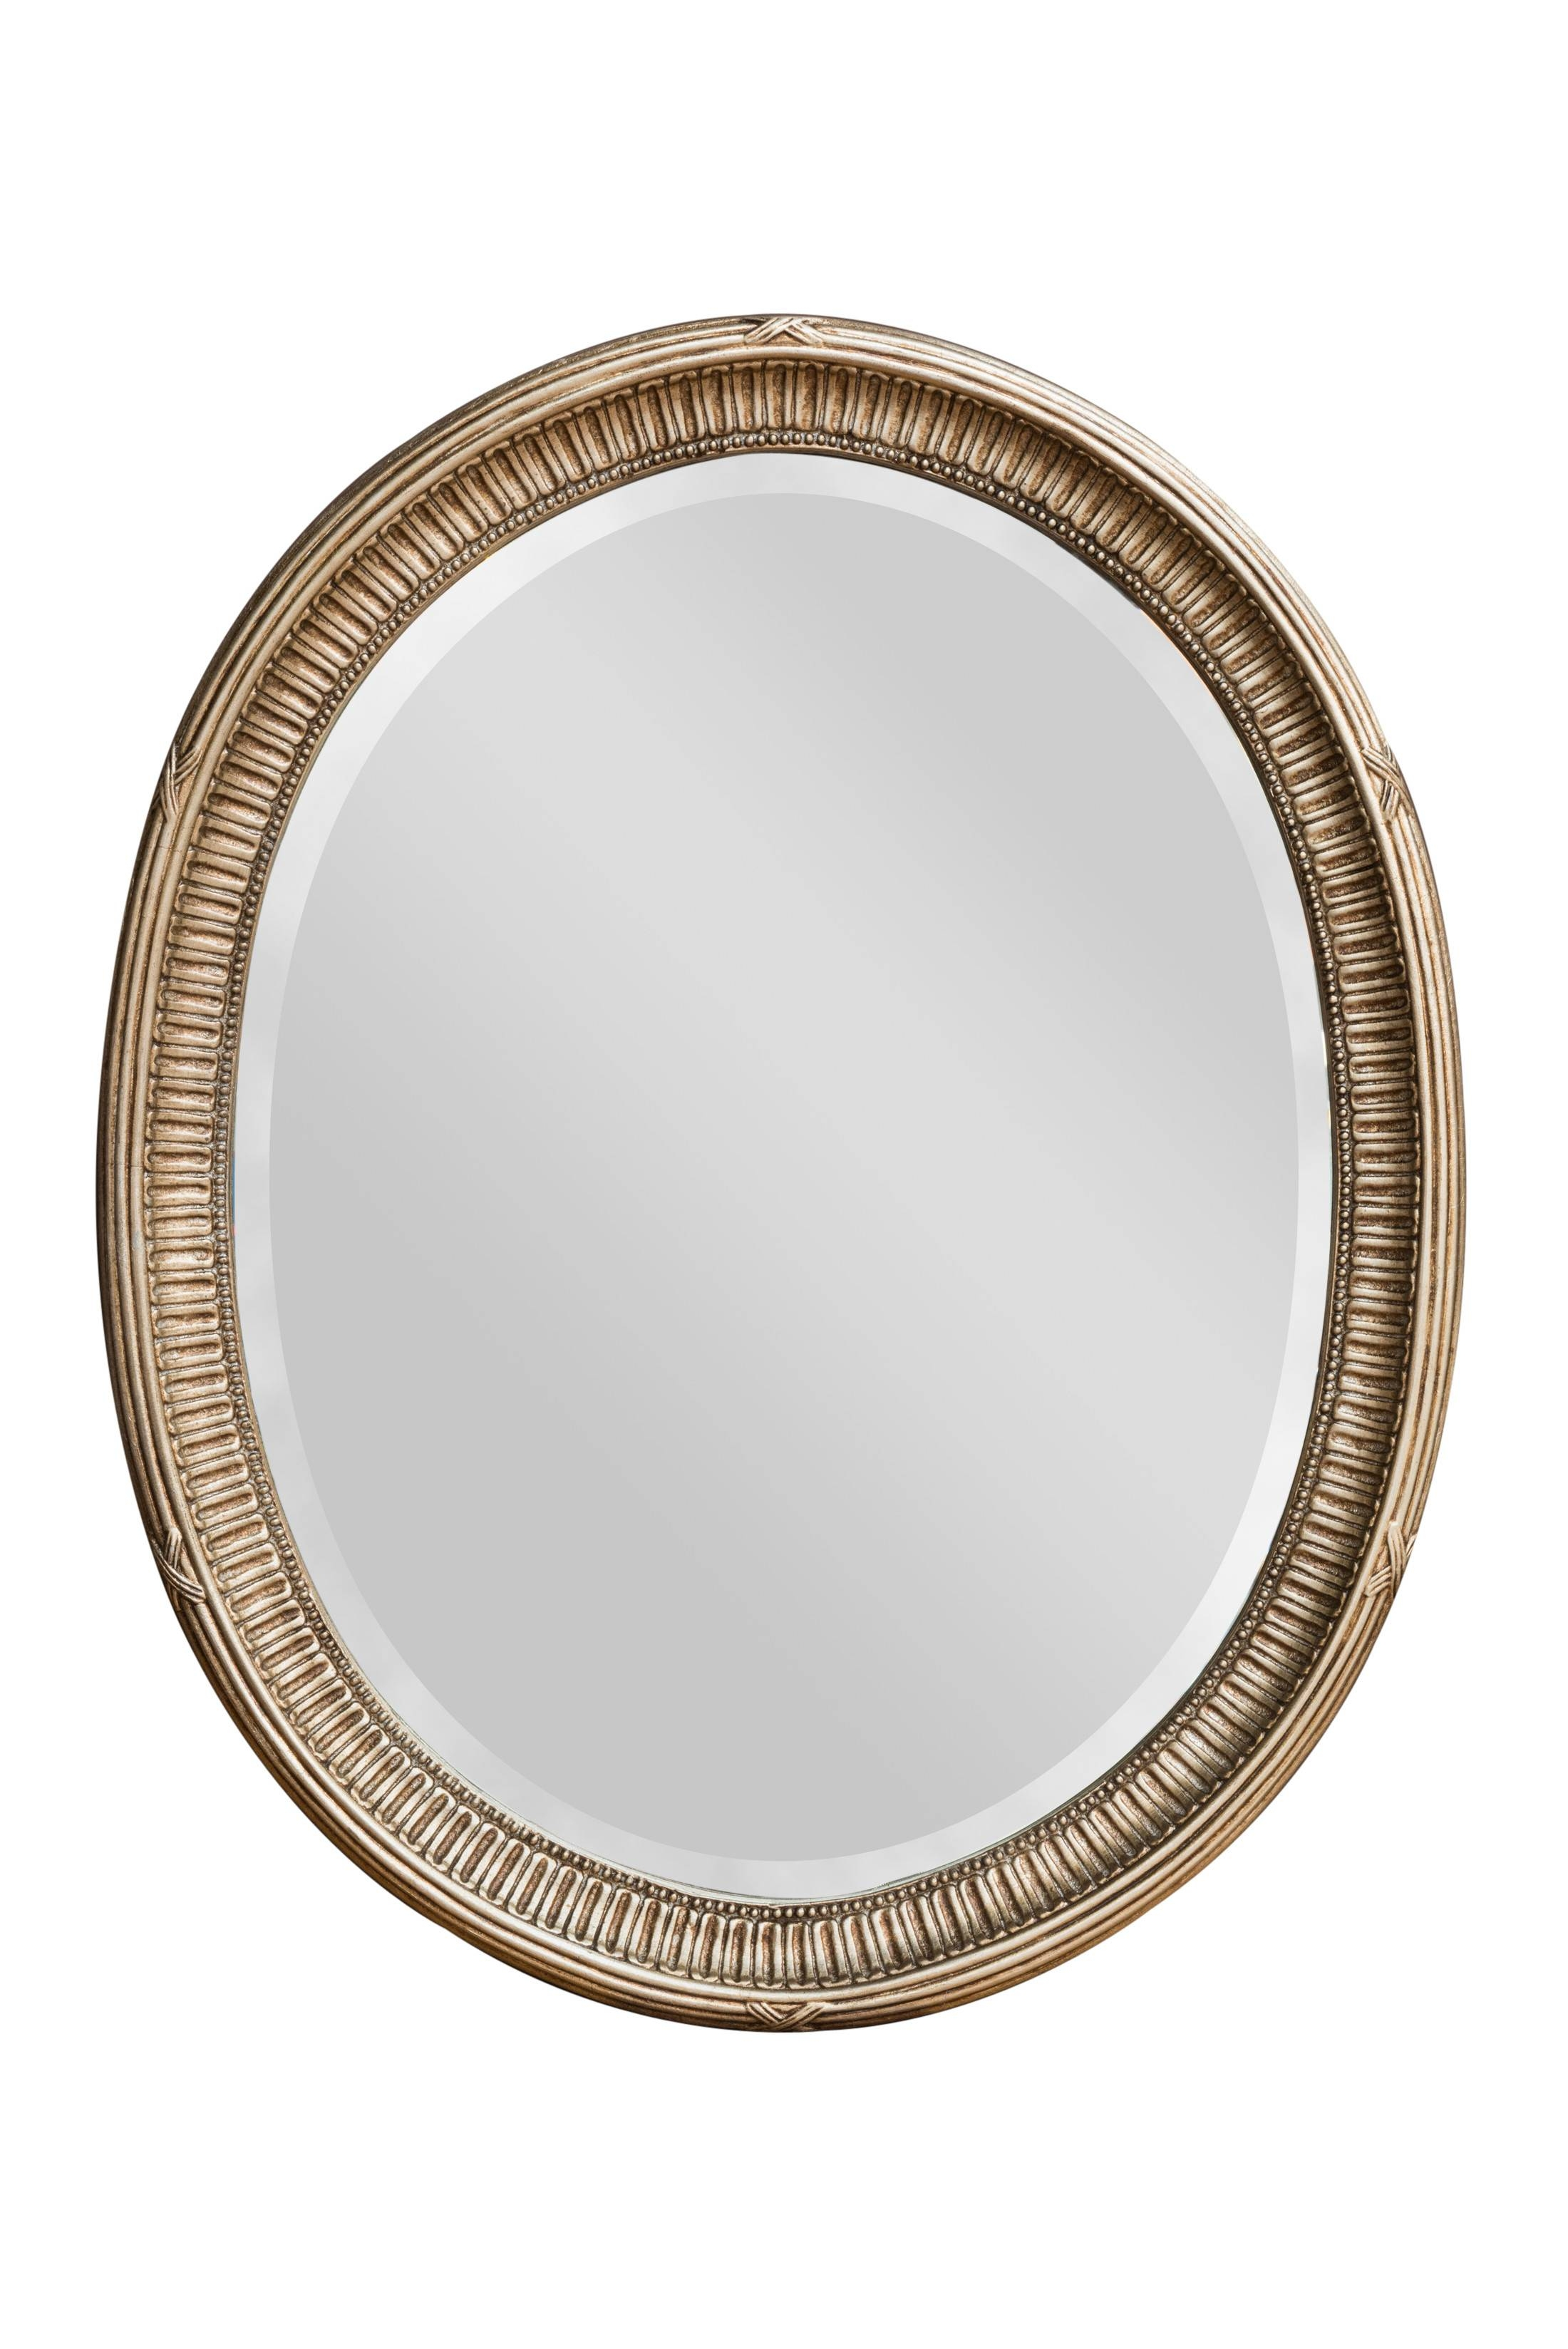 Adam Silver Oval Mirror | Bedroom Mirrors For Sale - Panfili regarding Oval Silver Mirrors (Image 3 of 25)